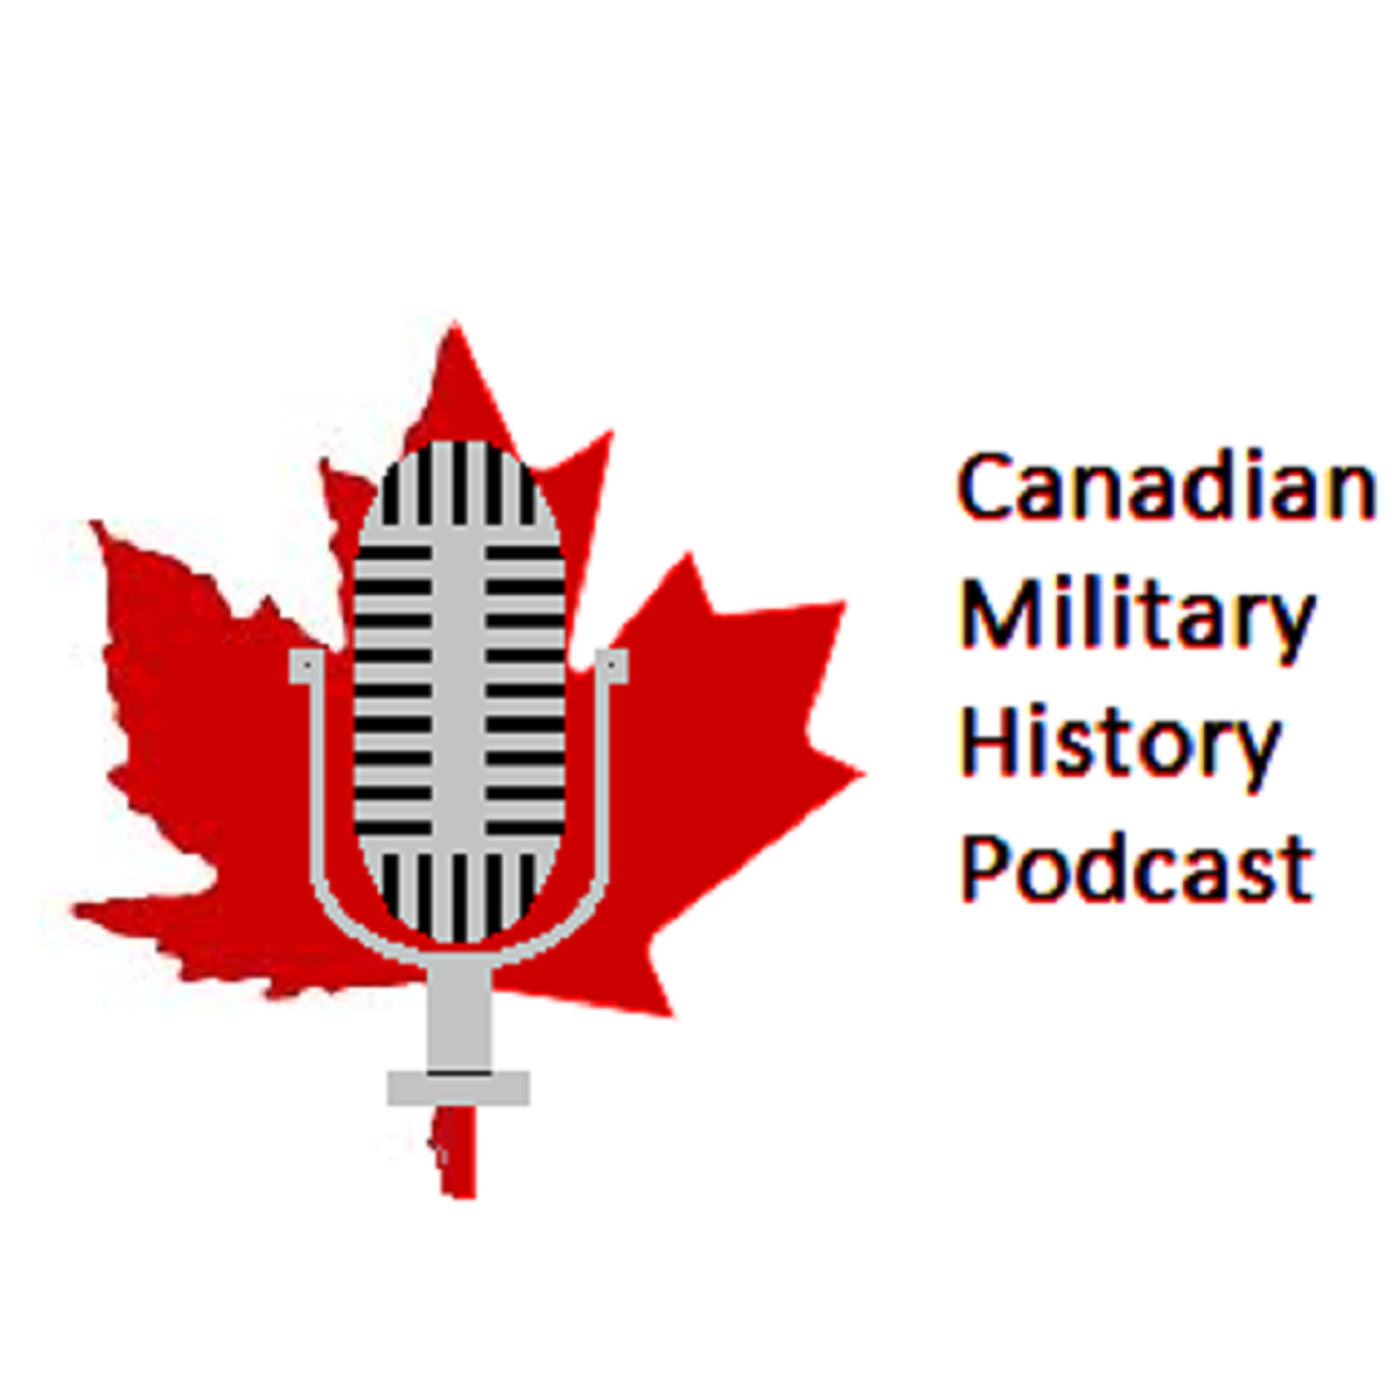 Podcasts – Canadian Military History Podcast